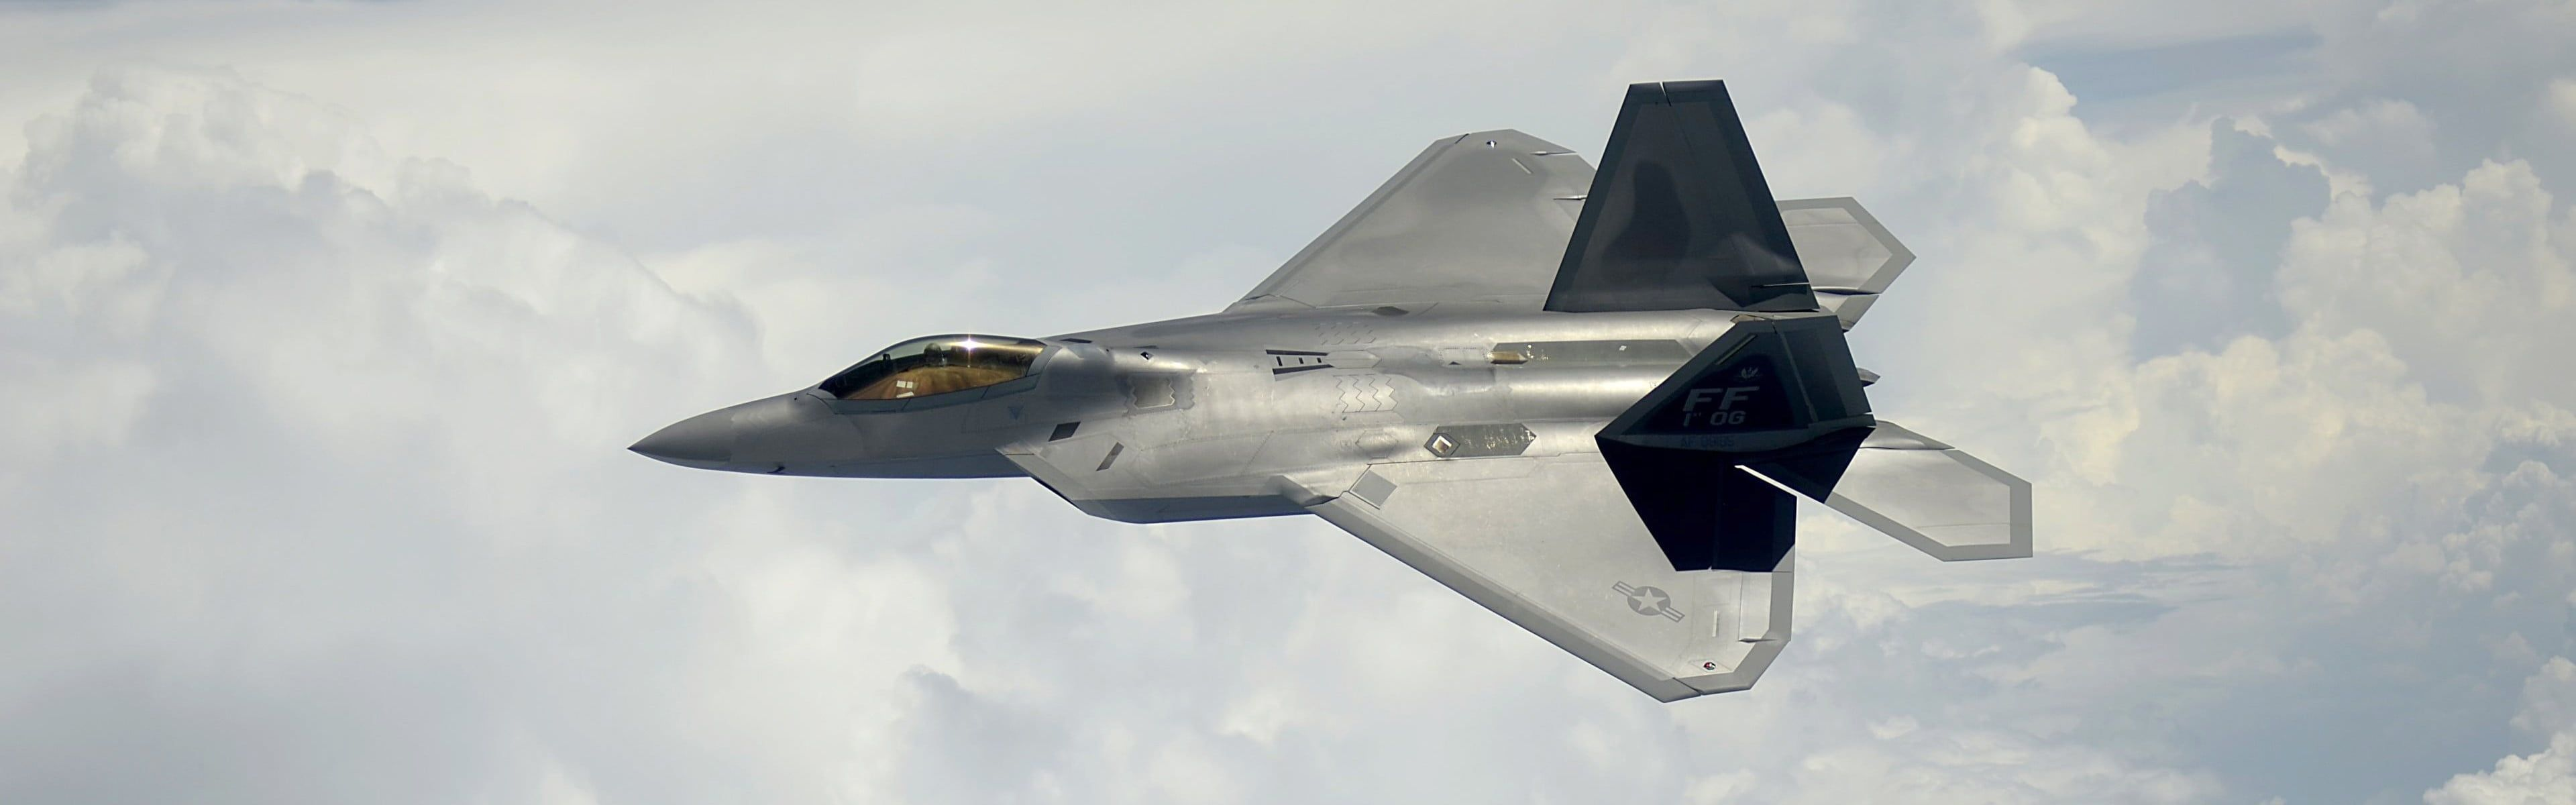 Gray Jet F 22 Raptor Military Aircraft Aircraft Jet Fighter Us